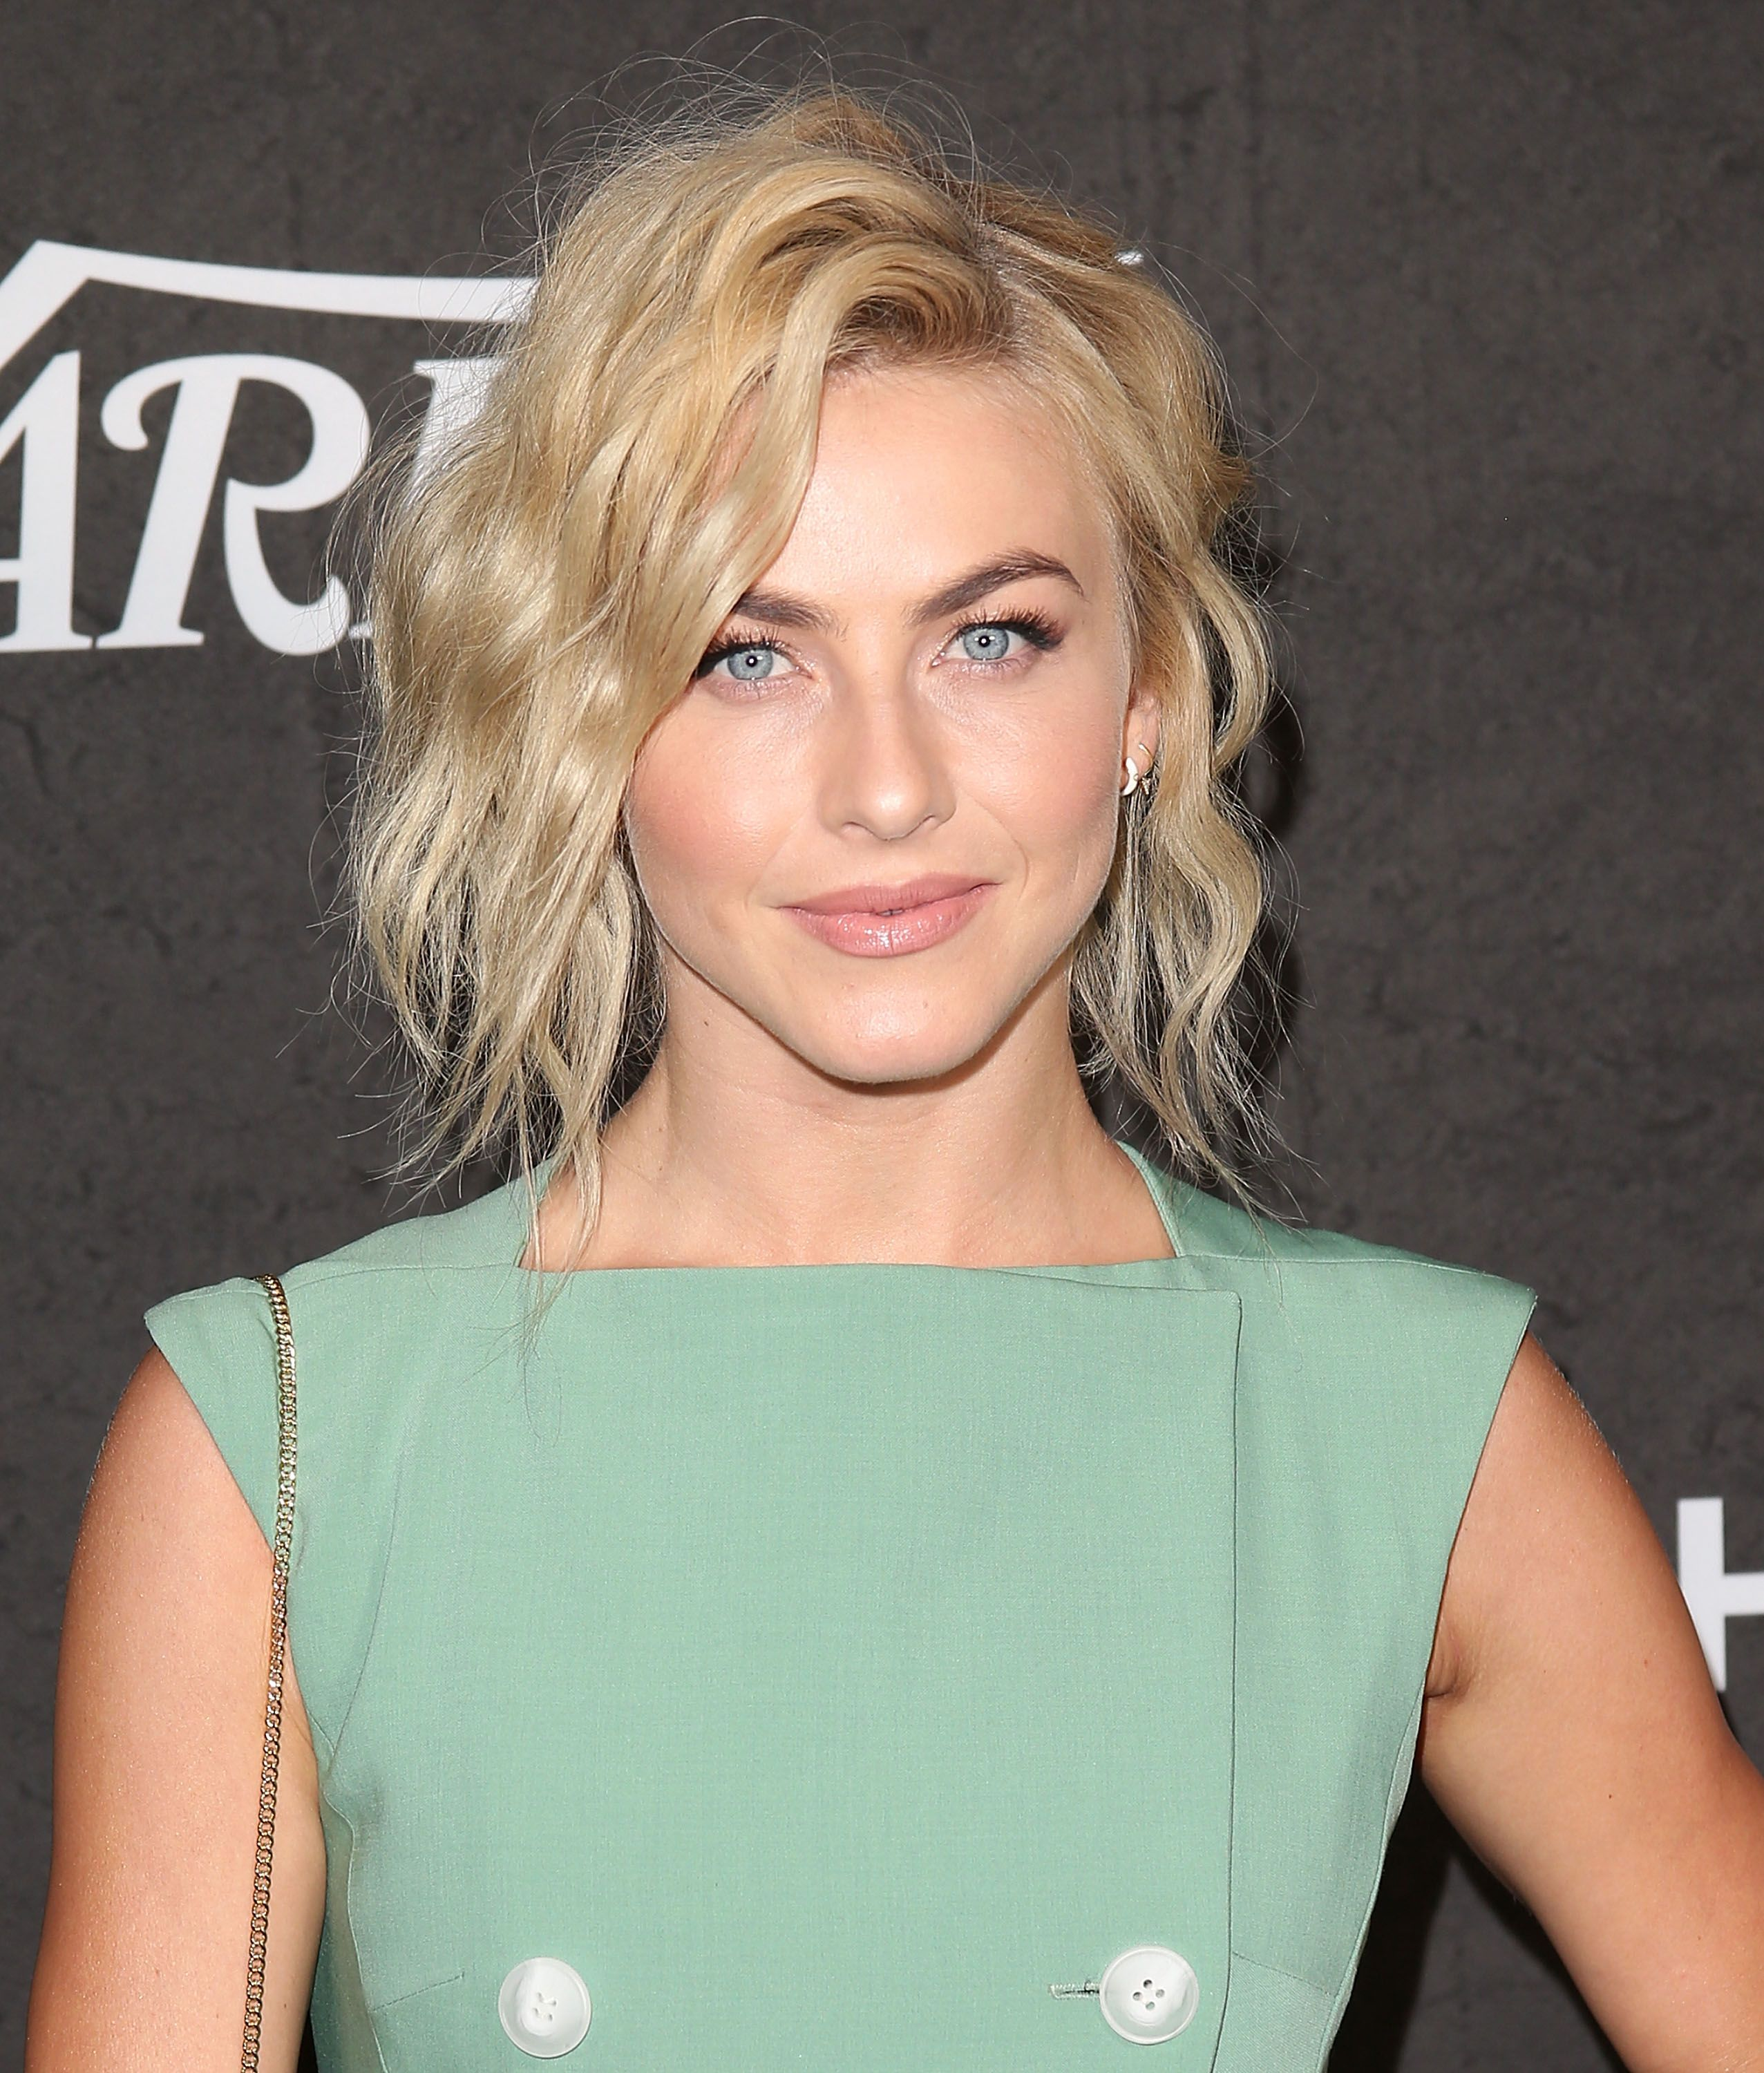 20 Best Short Curly Hairstyles For Women Short Haircuts For Curly Hair